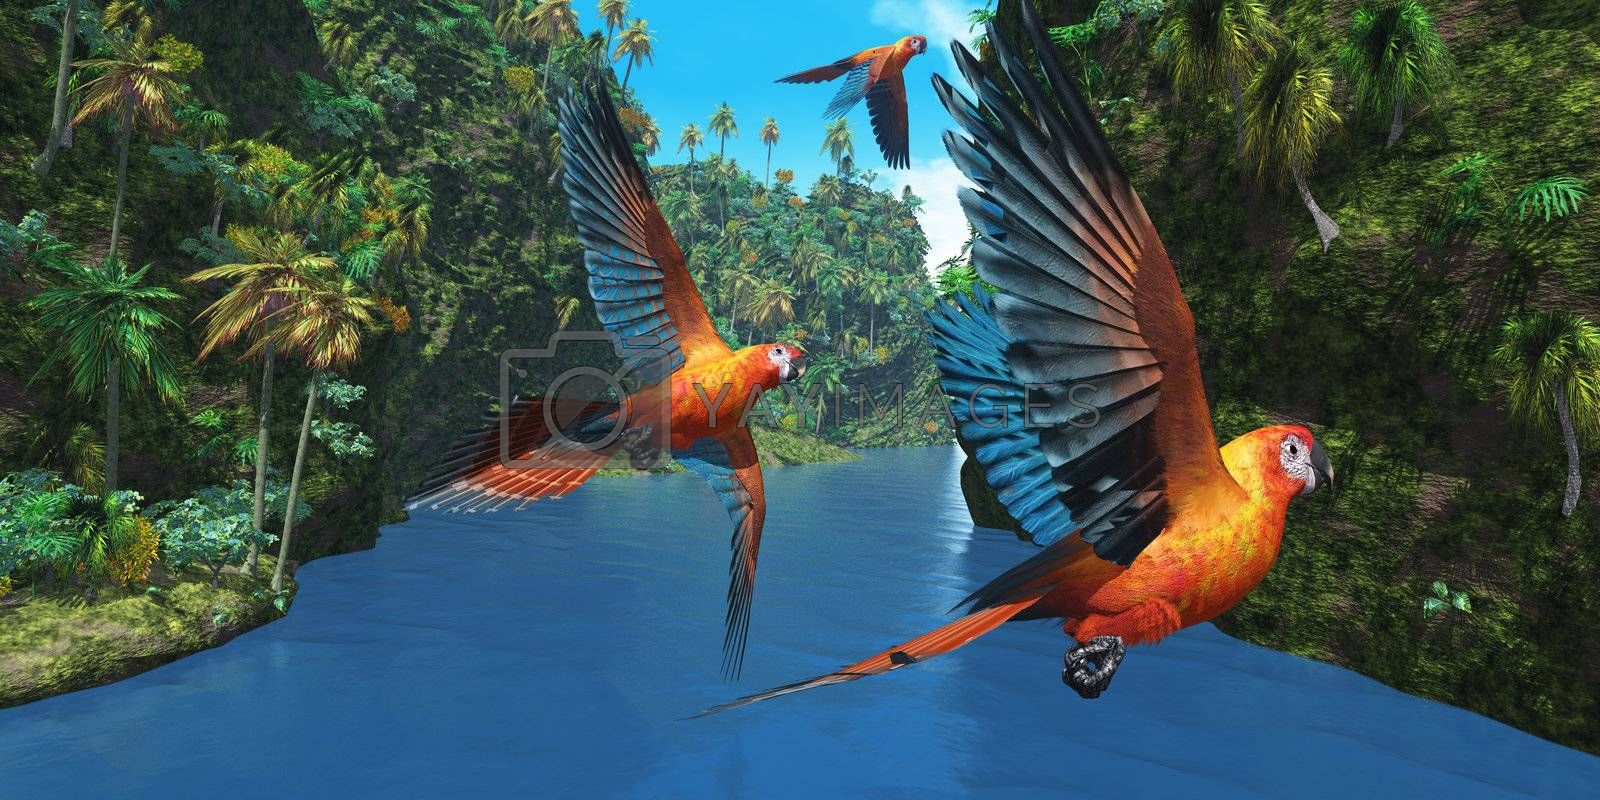 Three amazing parrots fly over a jungle river in their brightly colored plumage.